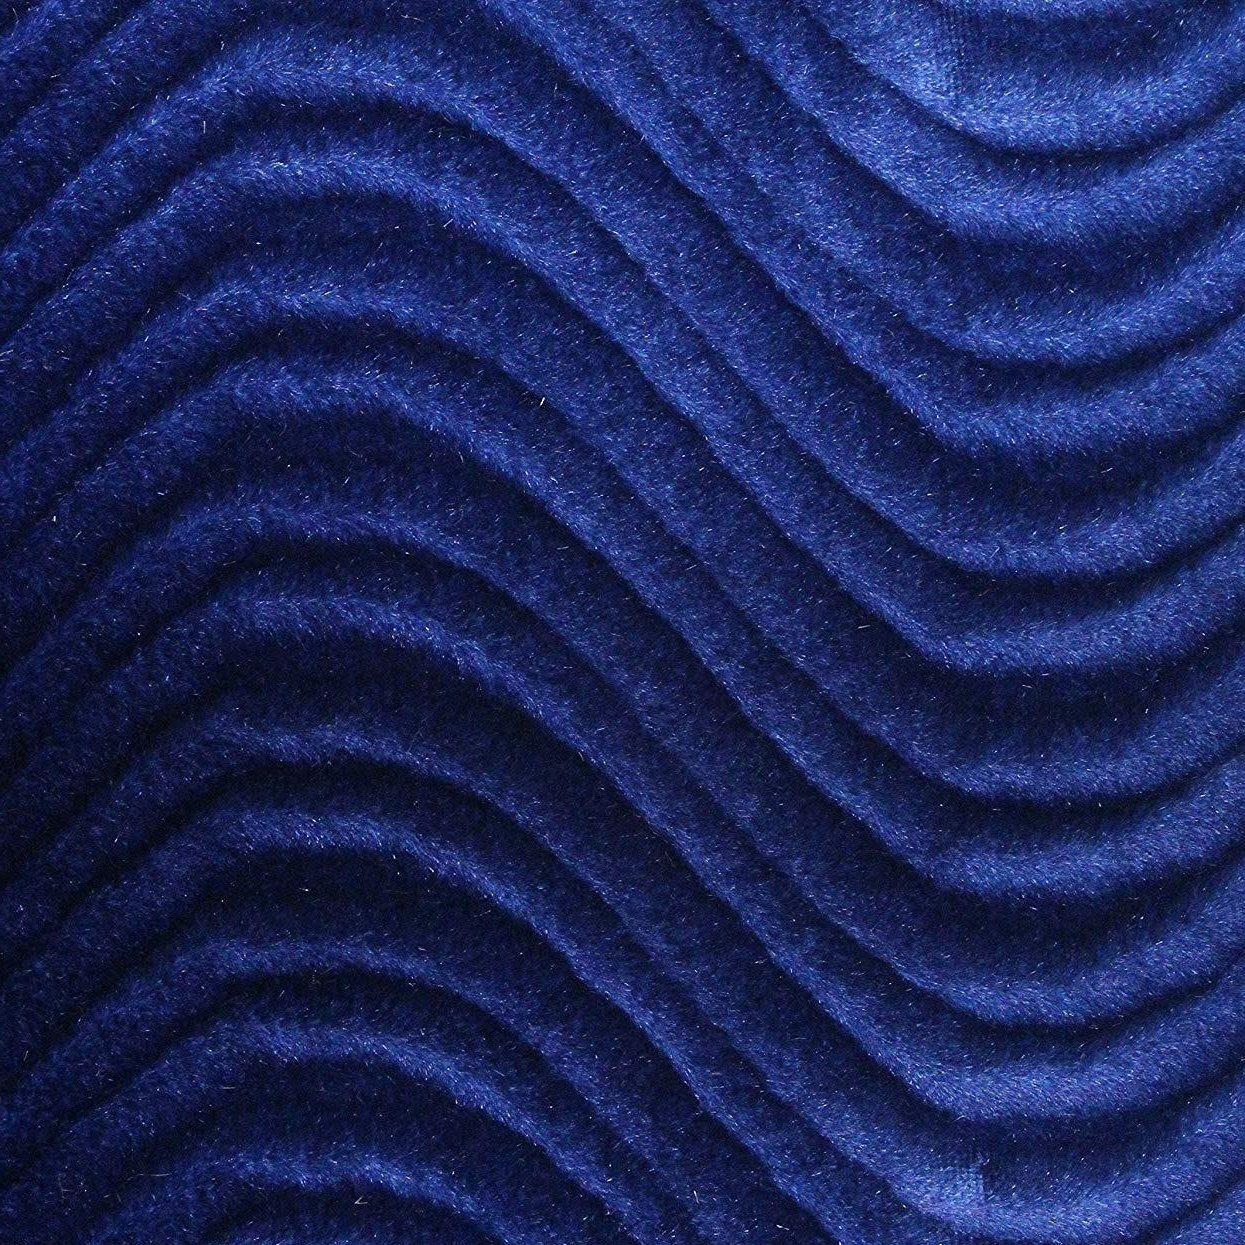 Royal Blue Velvet Flocking Swirl Upholstery Fabric Ifabric